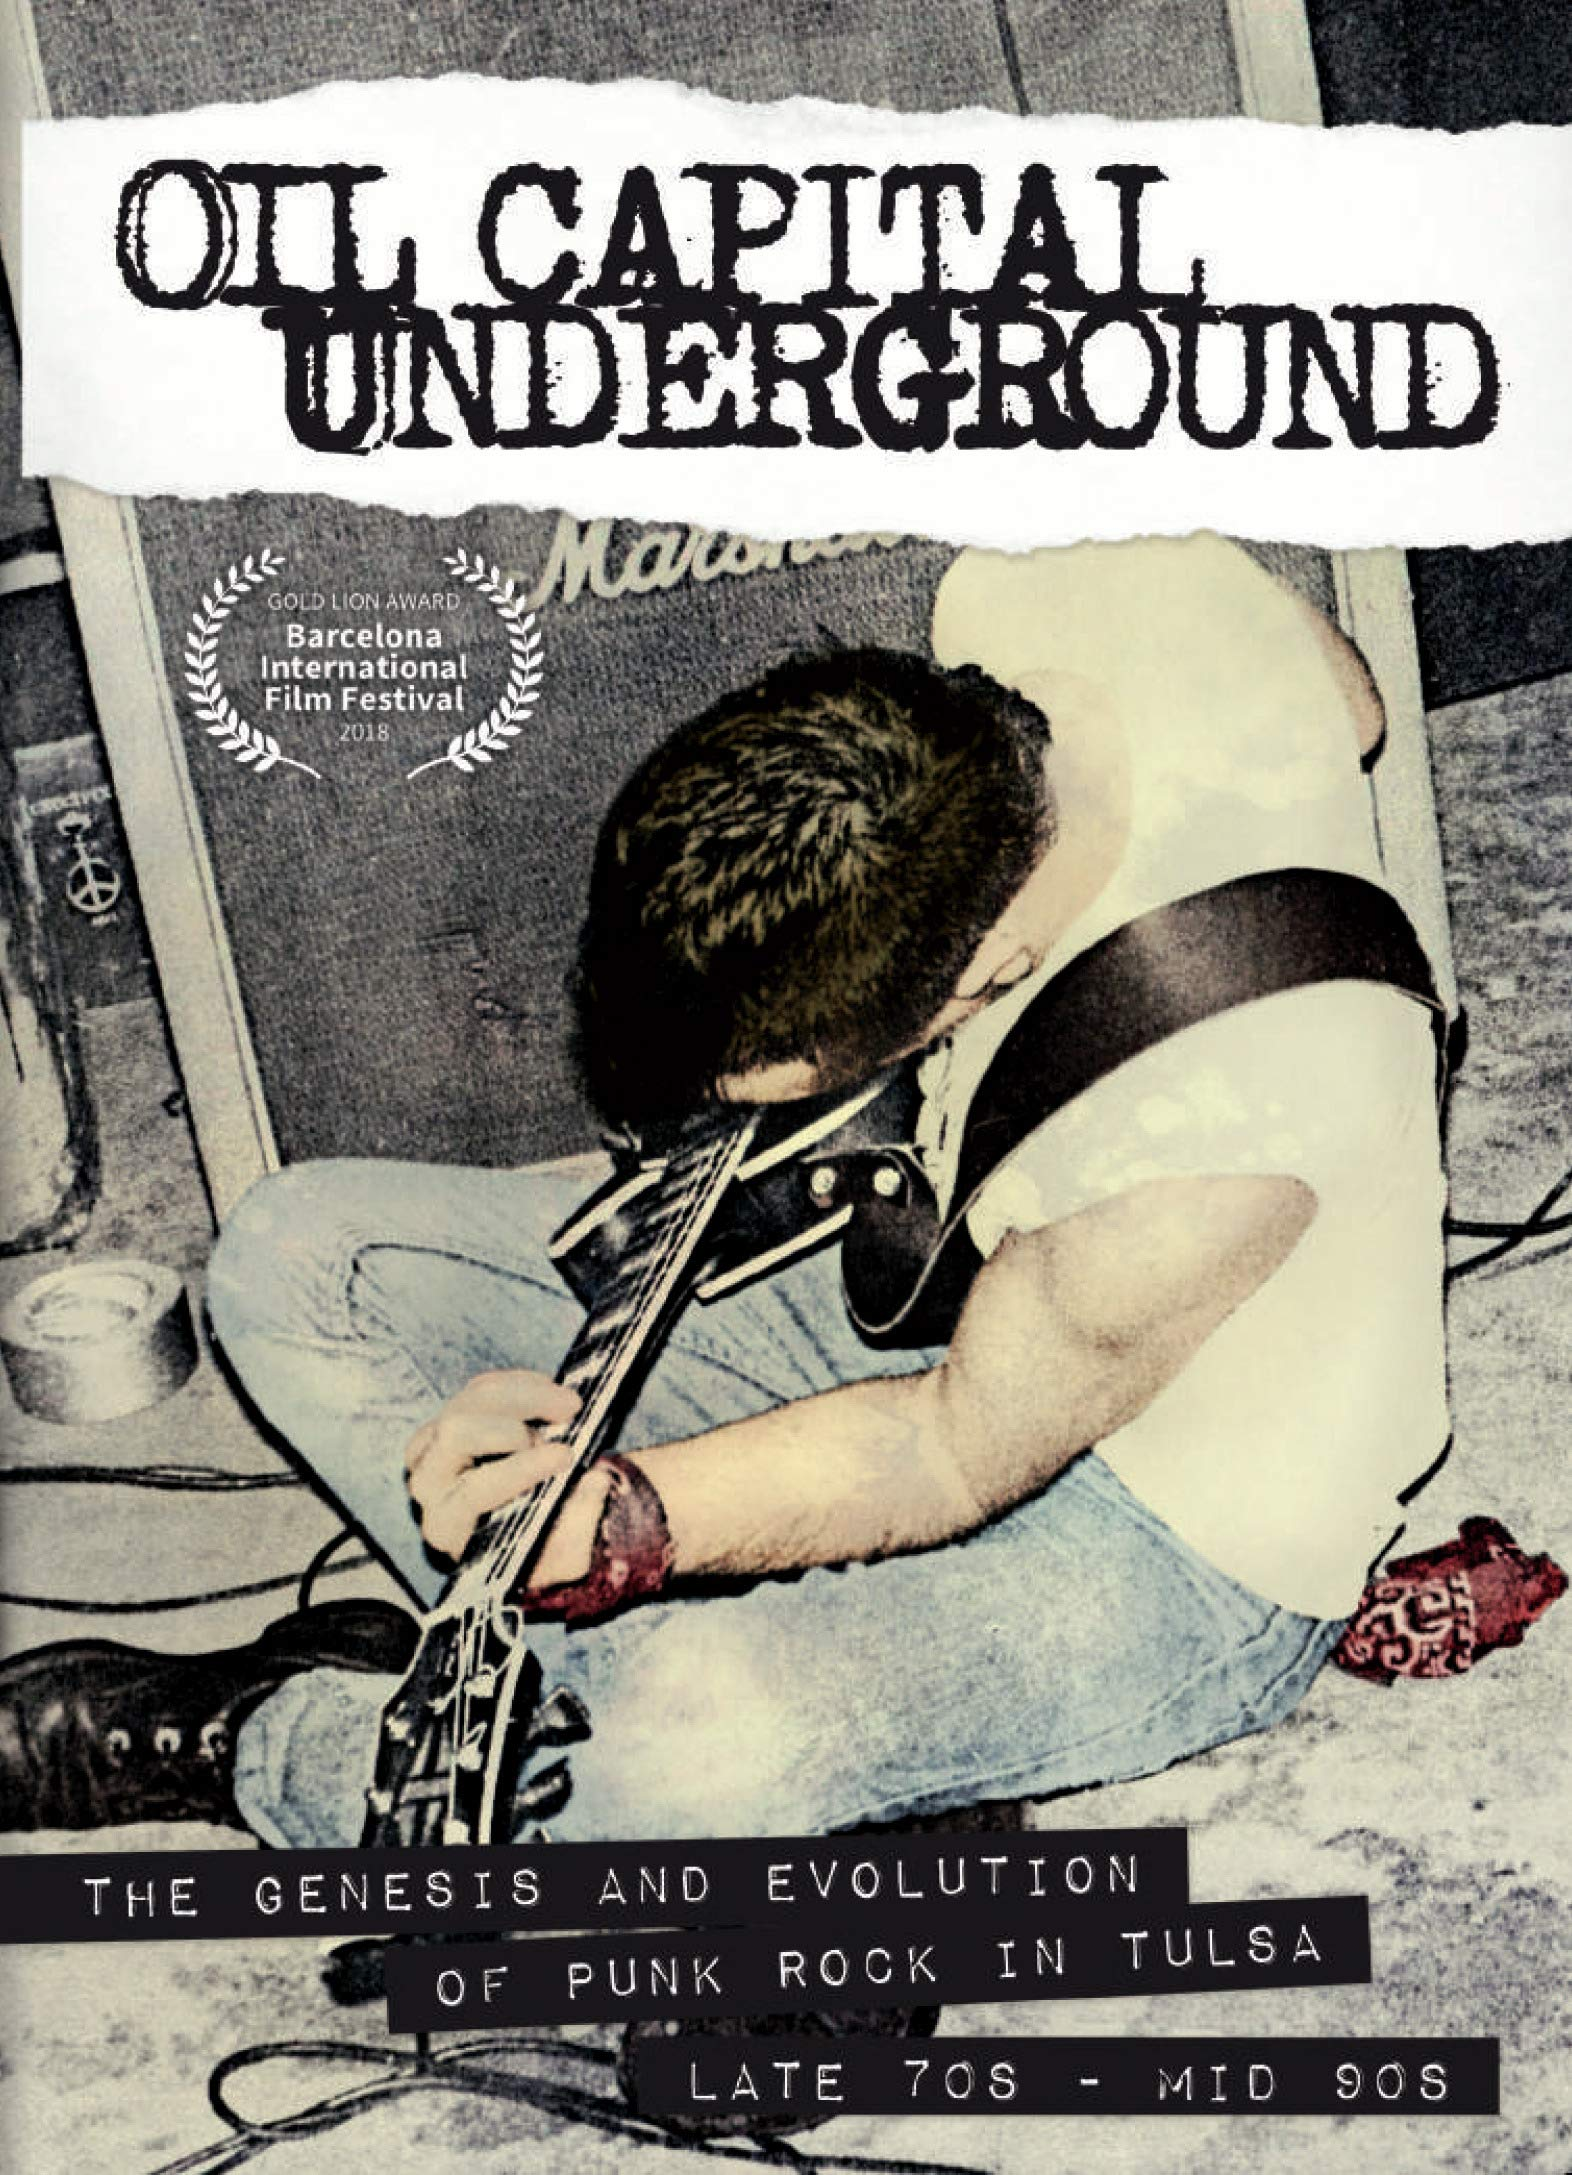 Oil Capital Underground: The Genesis & Evolution of Punk Rock in Tulsa-Late 70s to Mid 90s on Amazon Prime Video UK